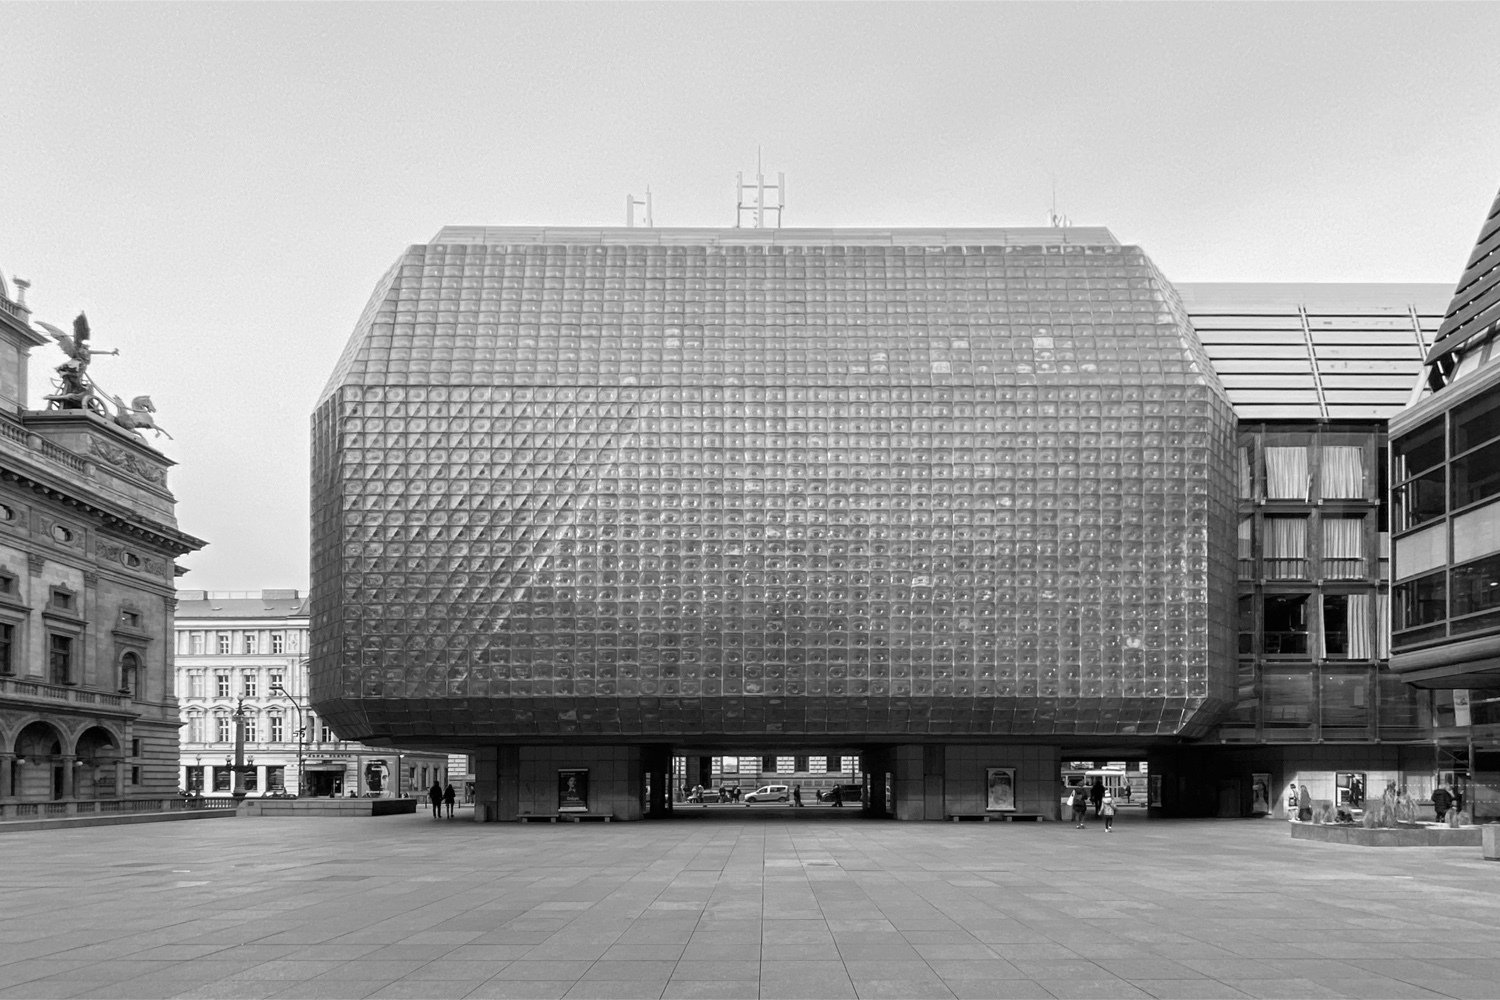 Documenting Prague's maligned socialist architecture — one photo at a time